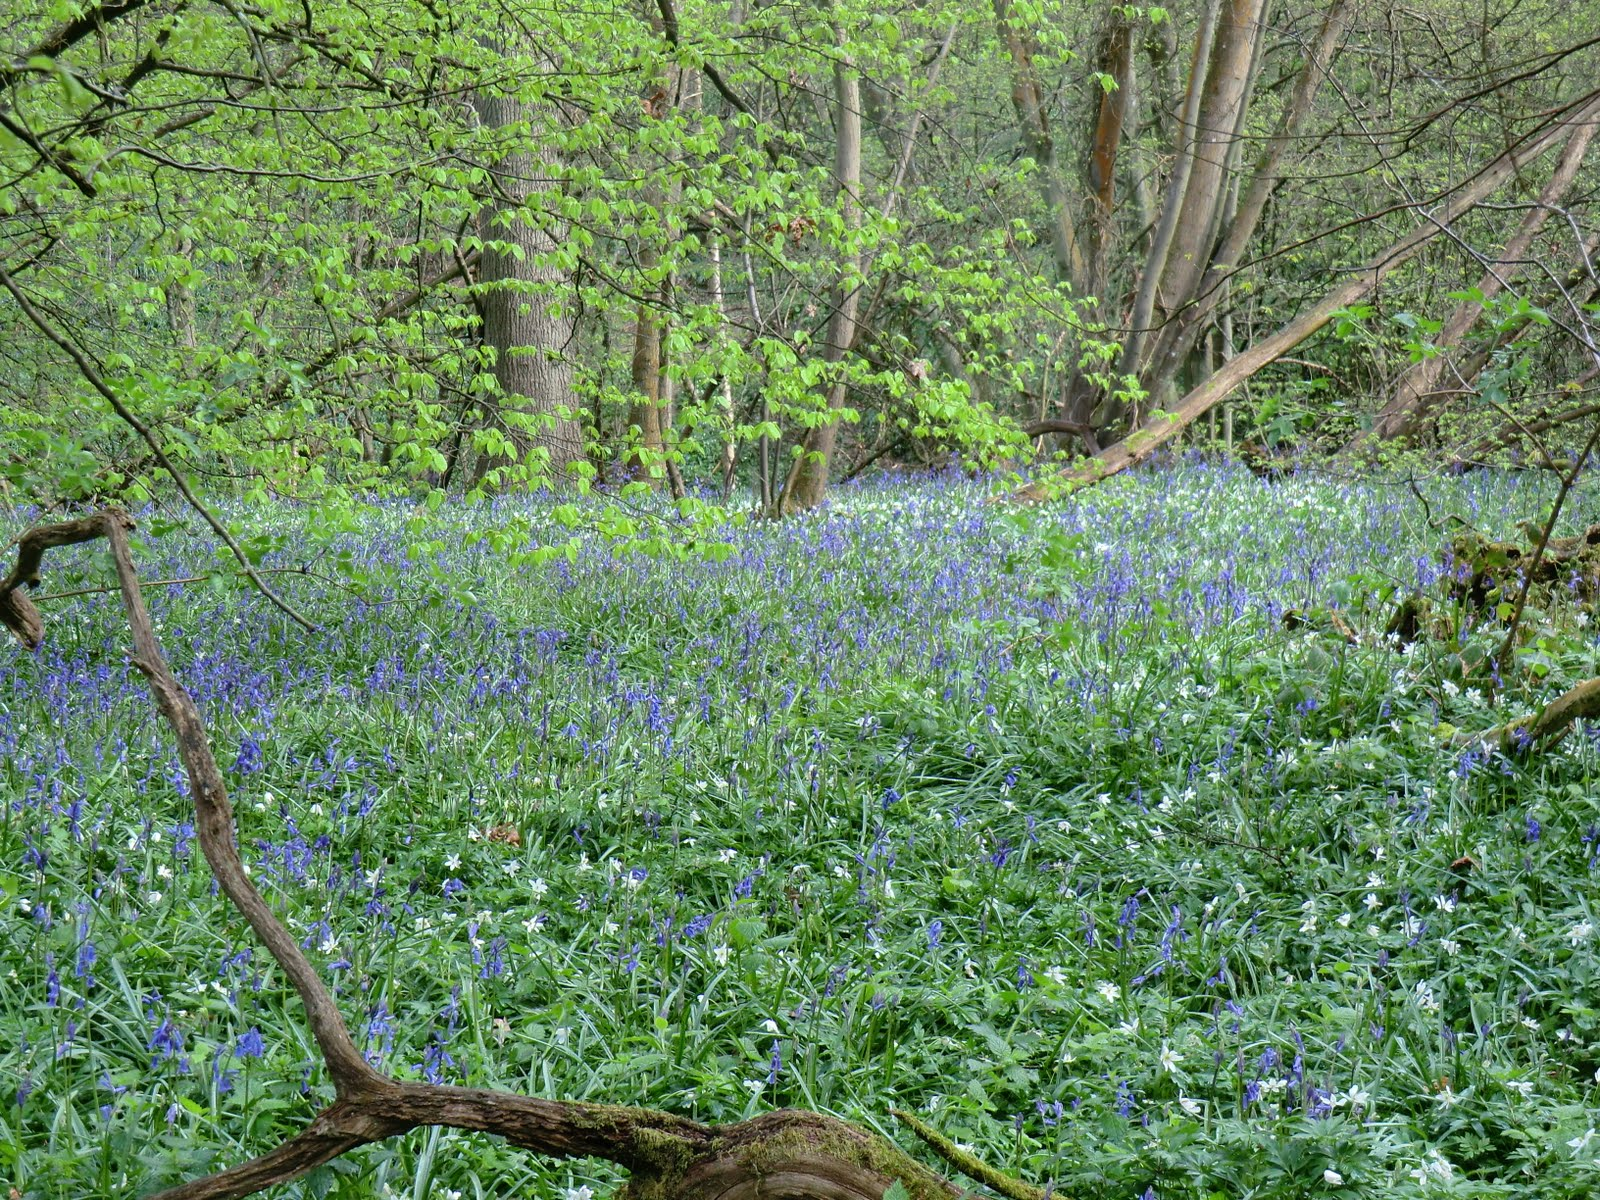 CIMG2596 Wood anemones and bluebells in Comb Wood